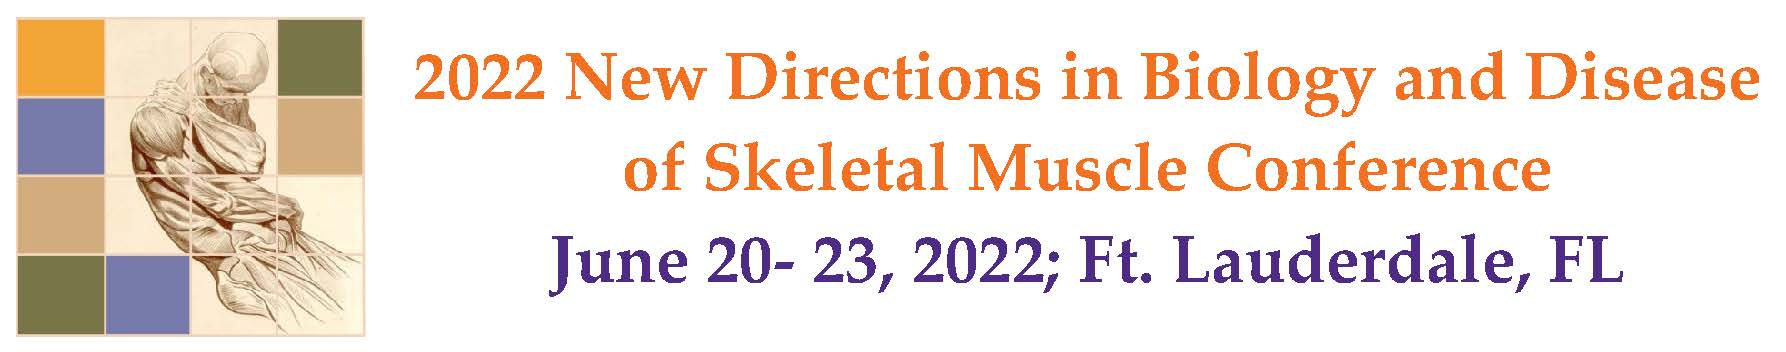 2022 New Directions Logo